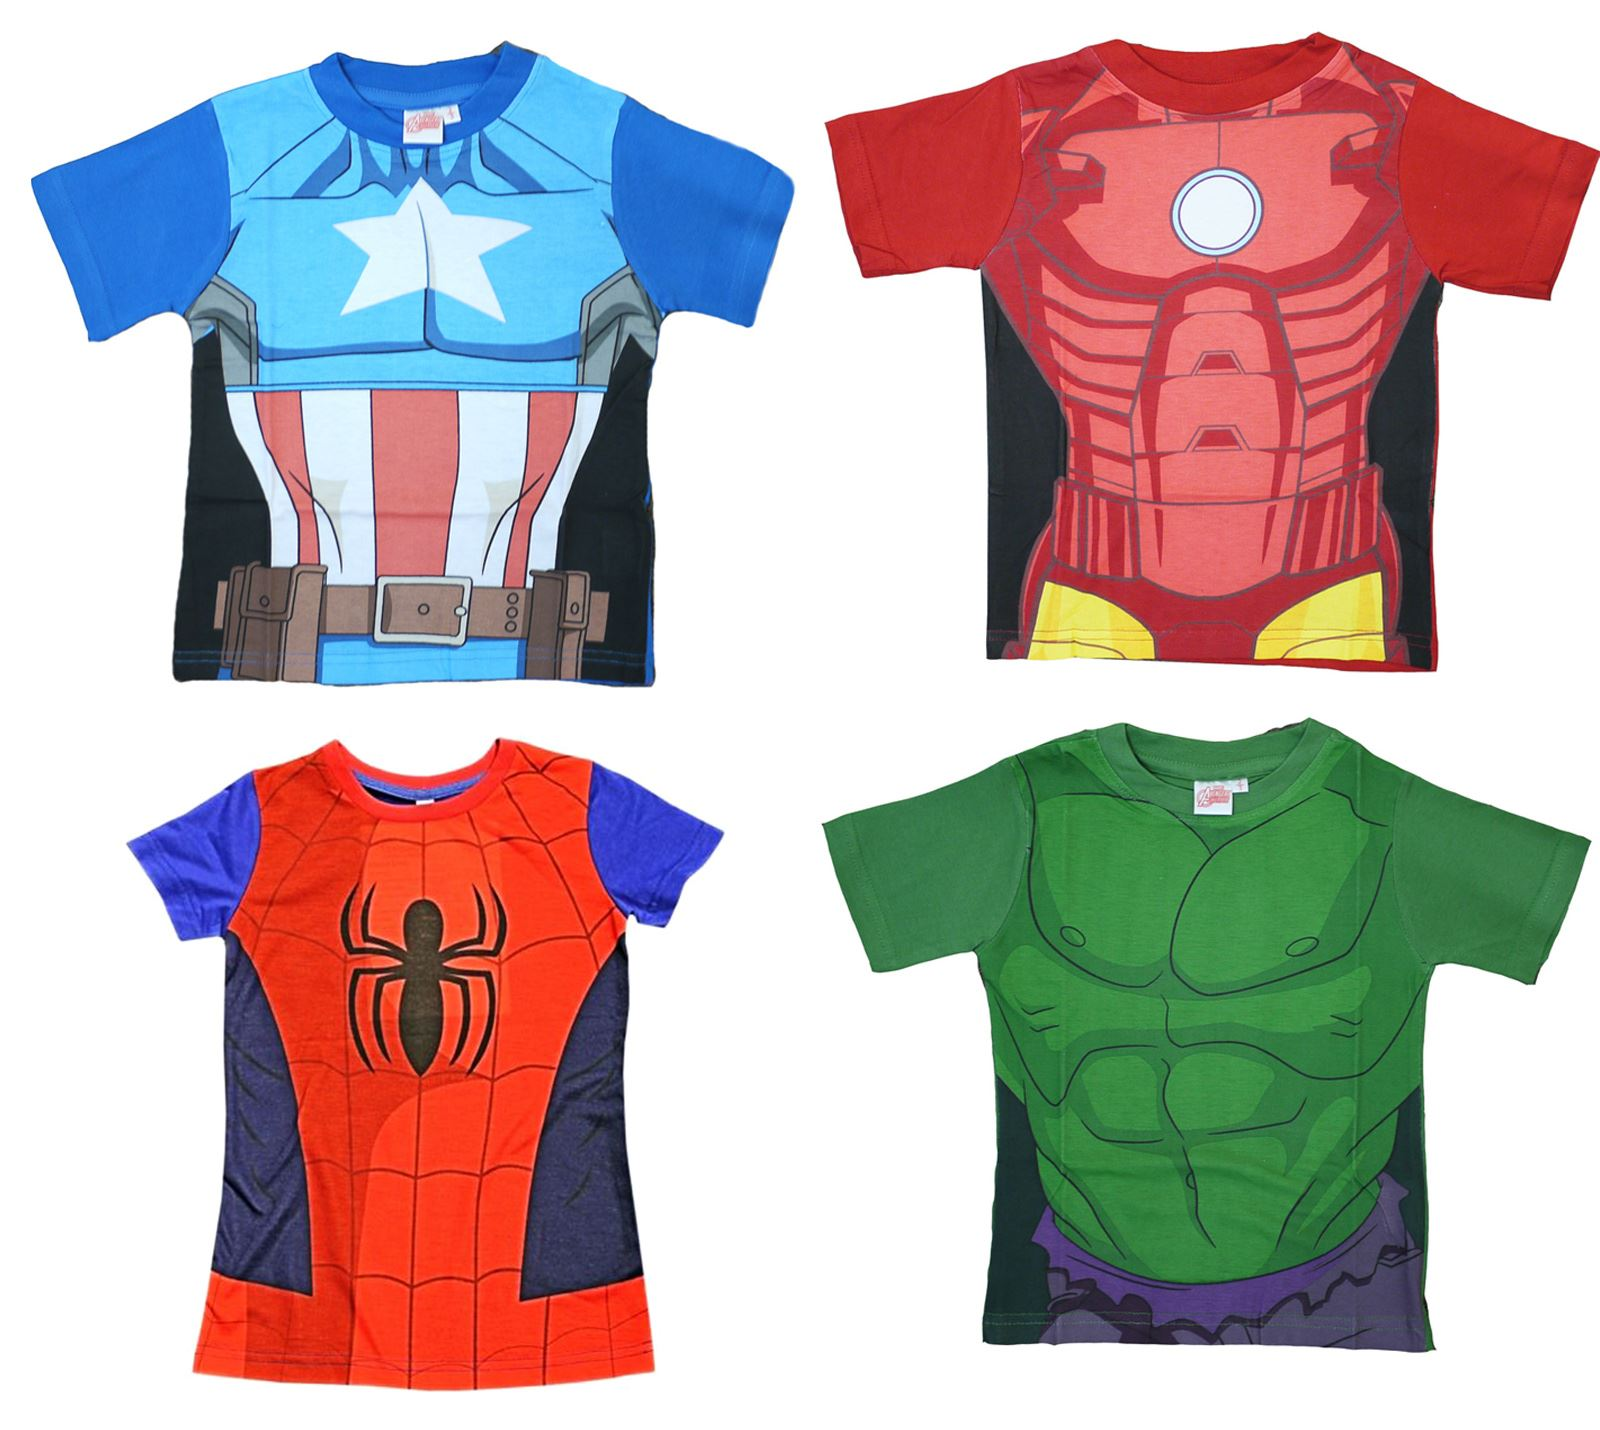 74c06b9335c26 Official Boys Kids T-Shirt Avengers Ultron Hulk Iron Man Captain America  Age 2-7